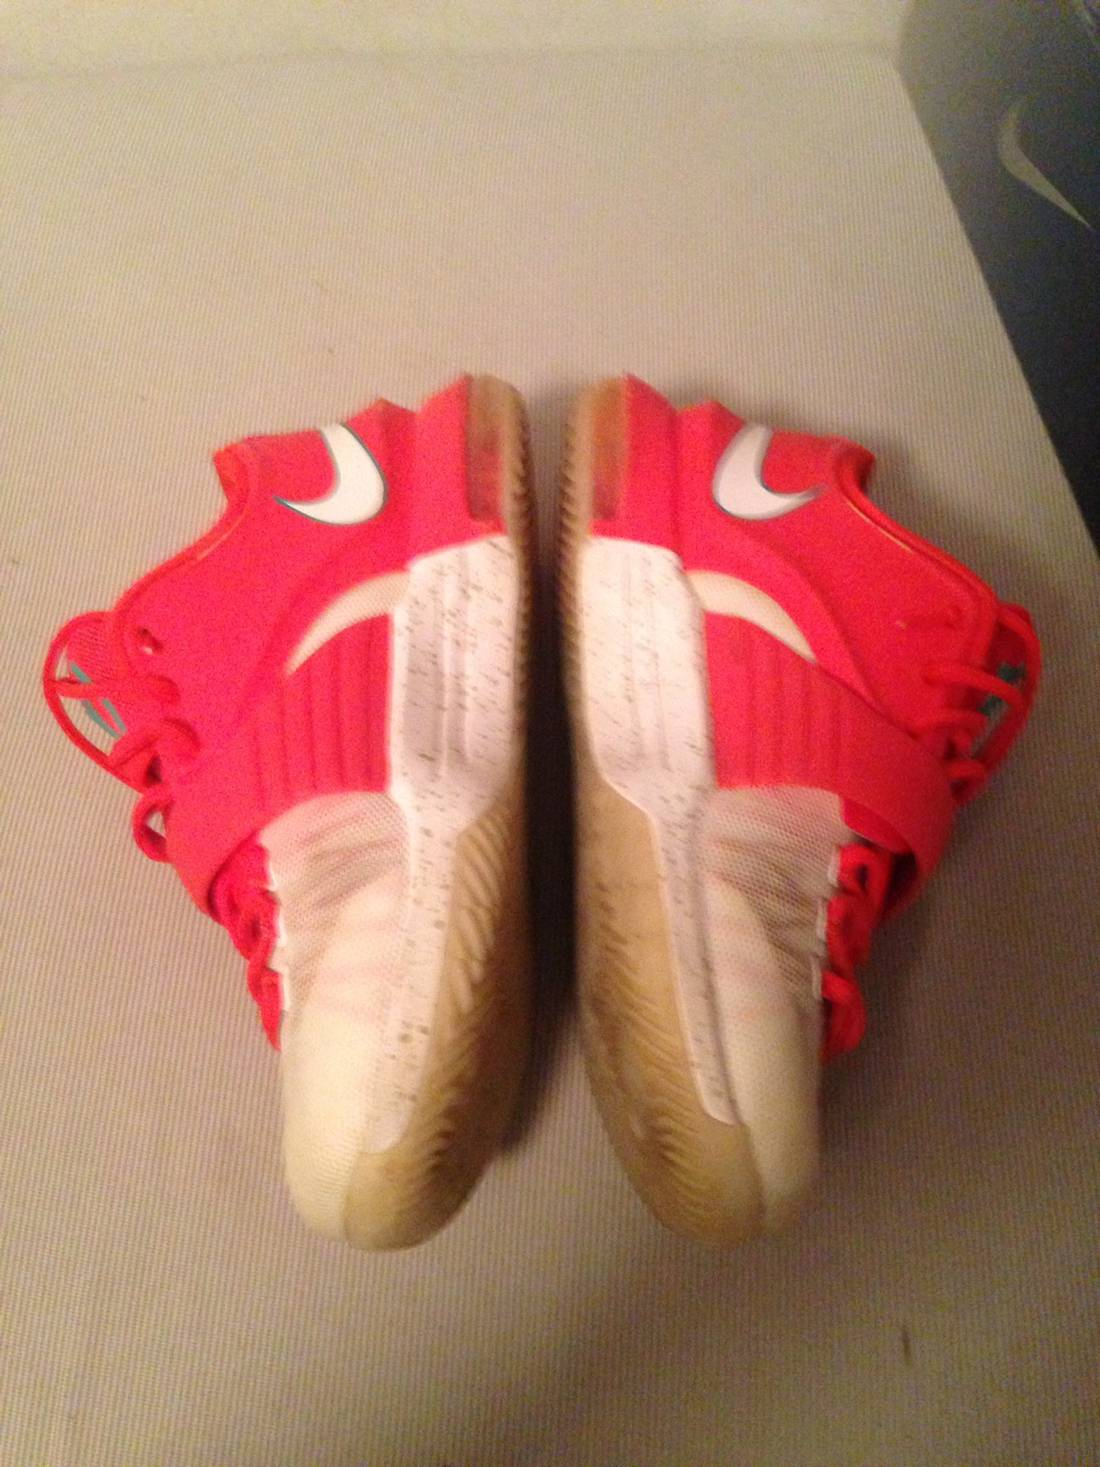 Nike Nike KD 7 Egg Nog/Christmas Size 8.5 - Low-Top Sneakers for ...